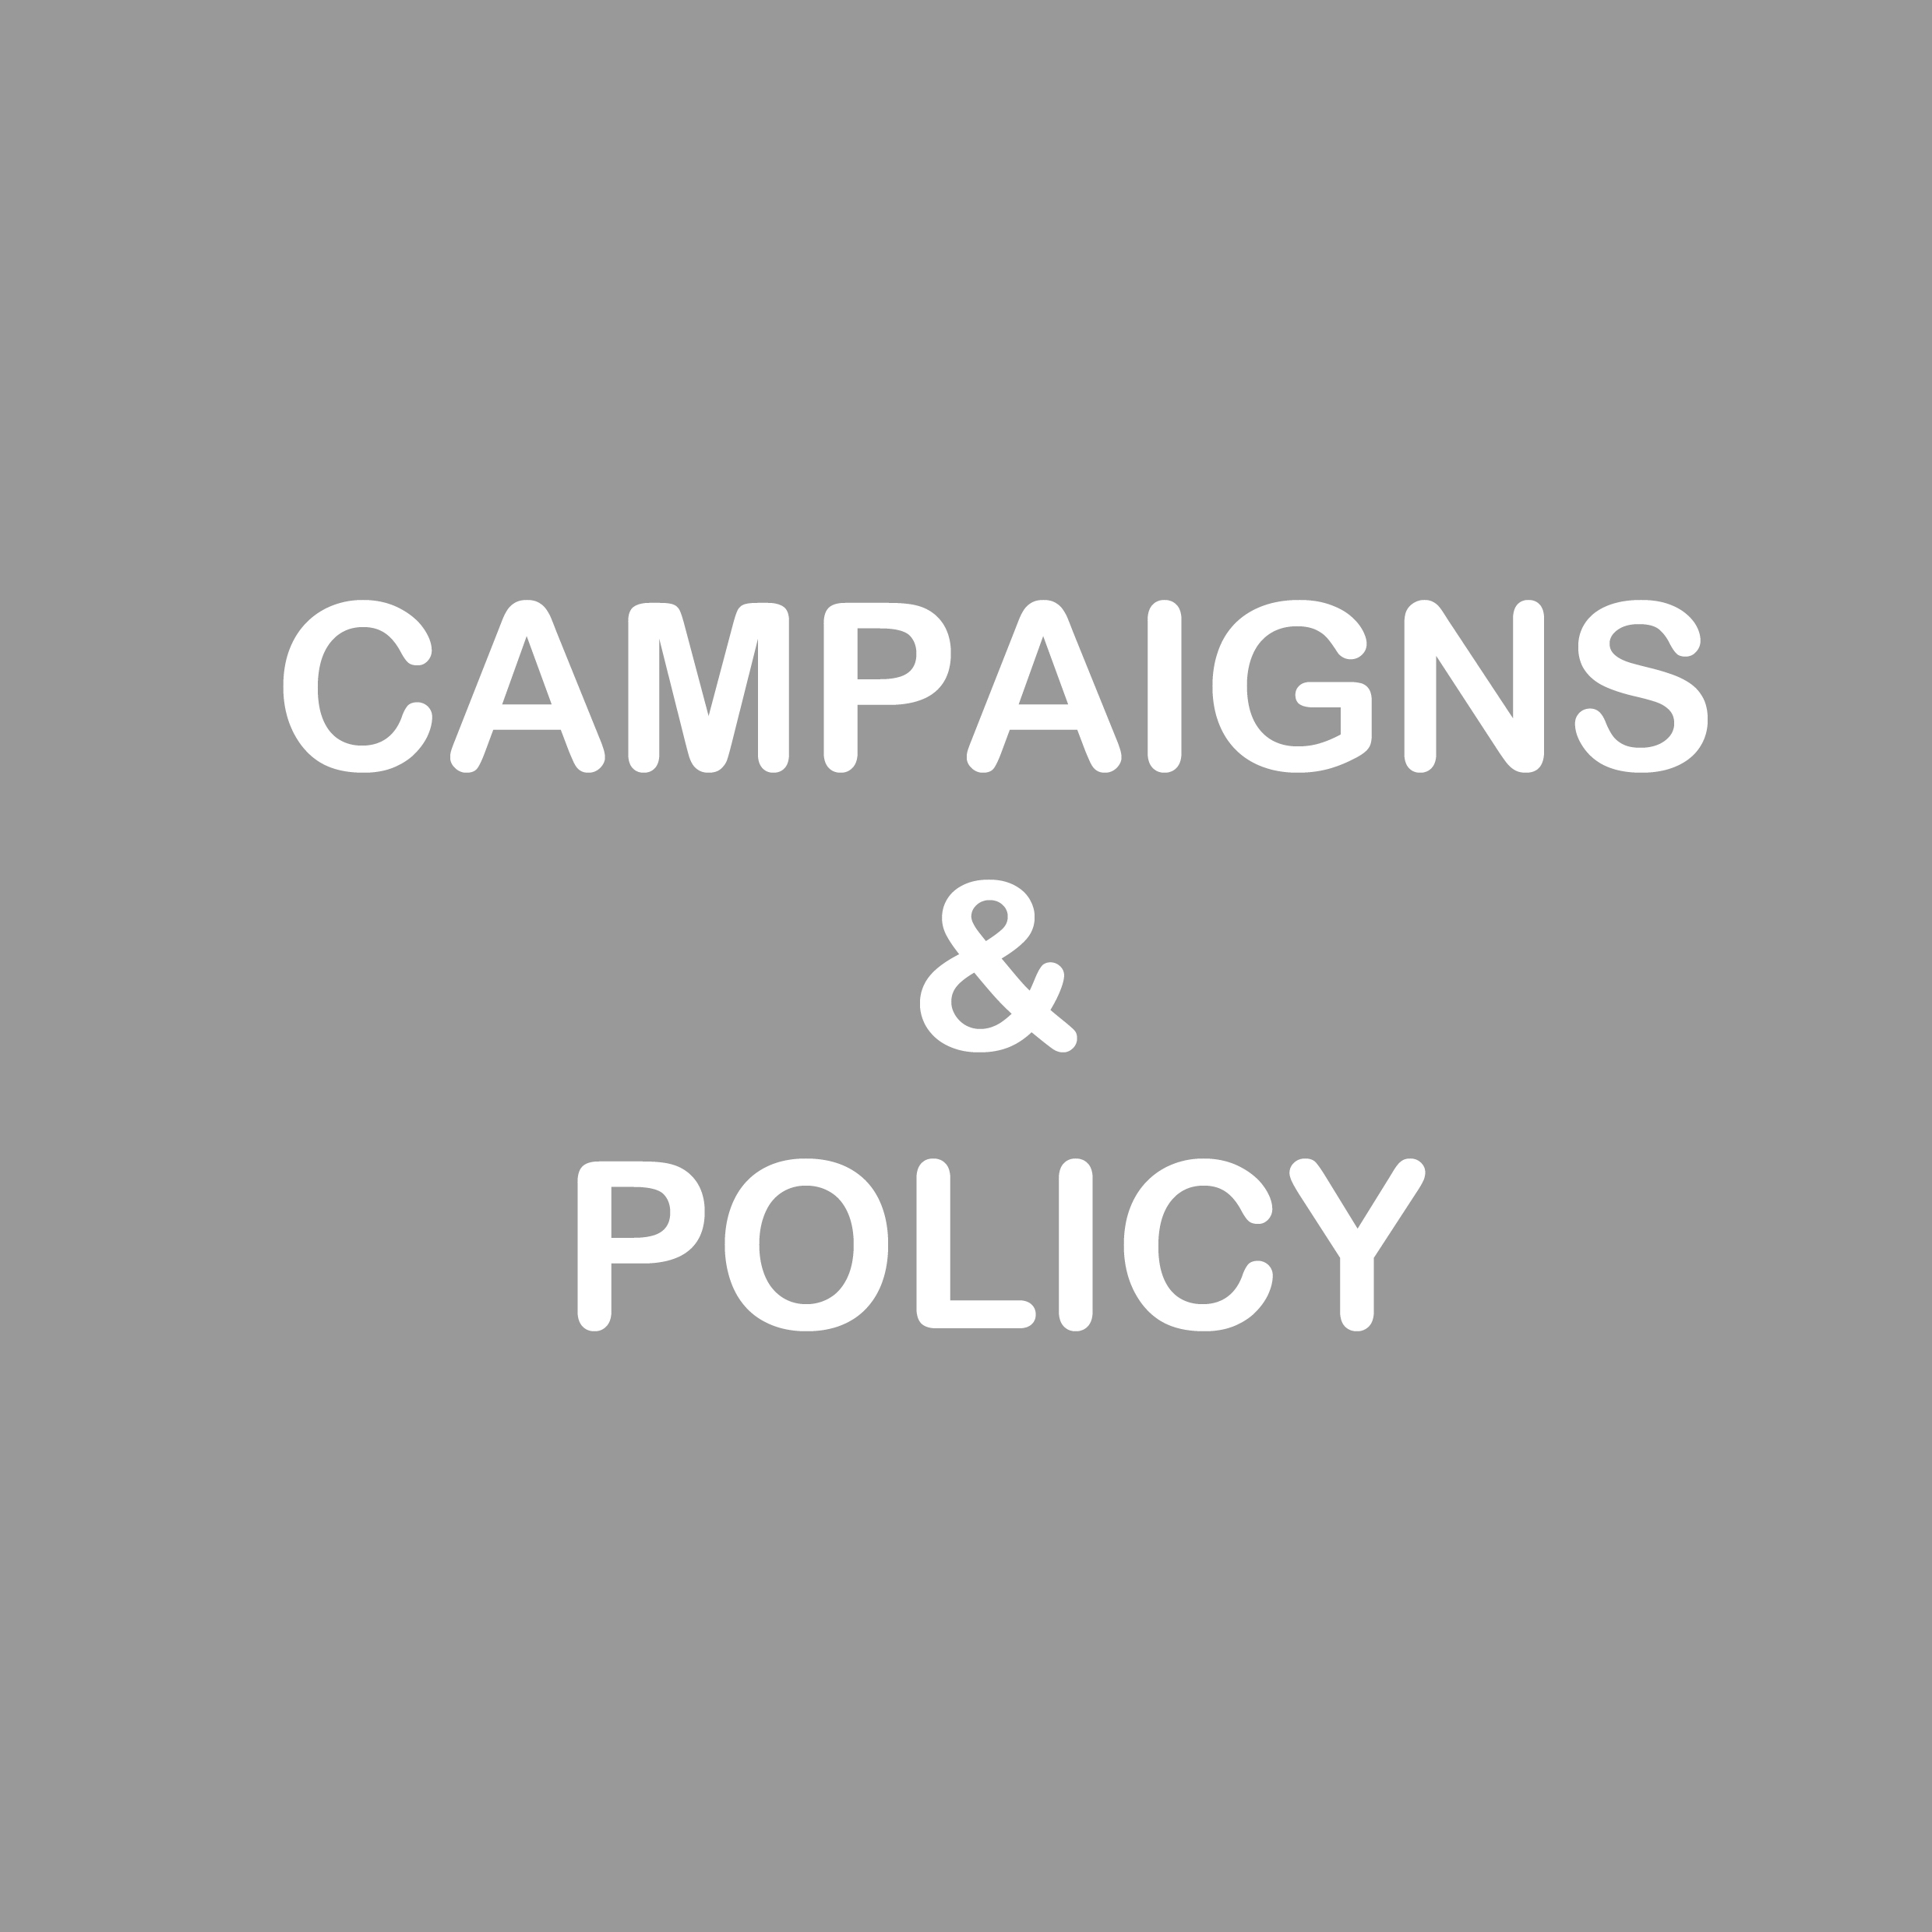 Campaigns & Policy